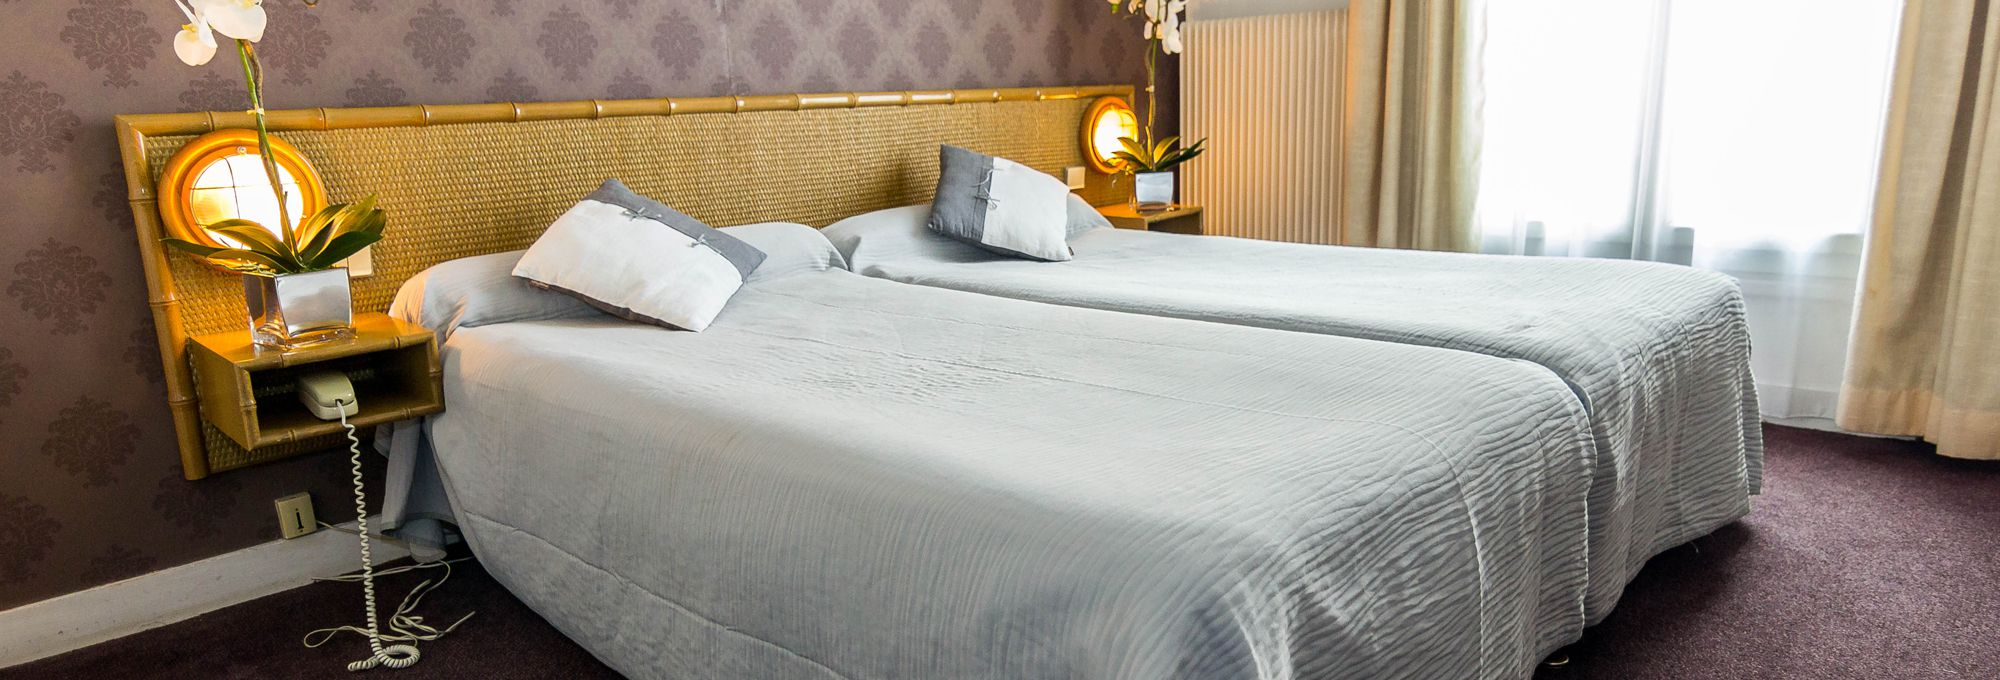 Brit Hotel ABC Champerret - Paris Levallois